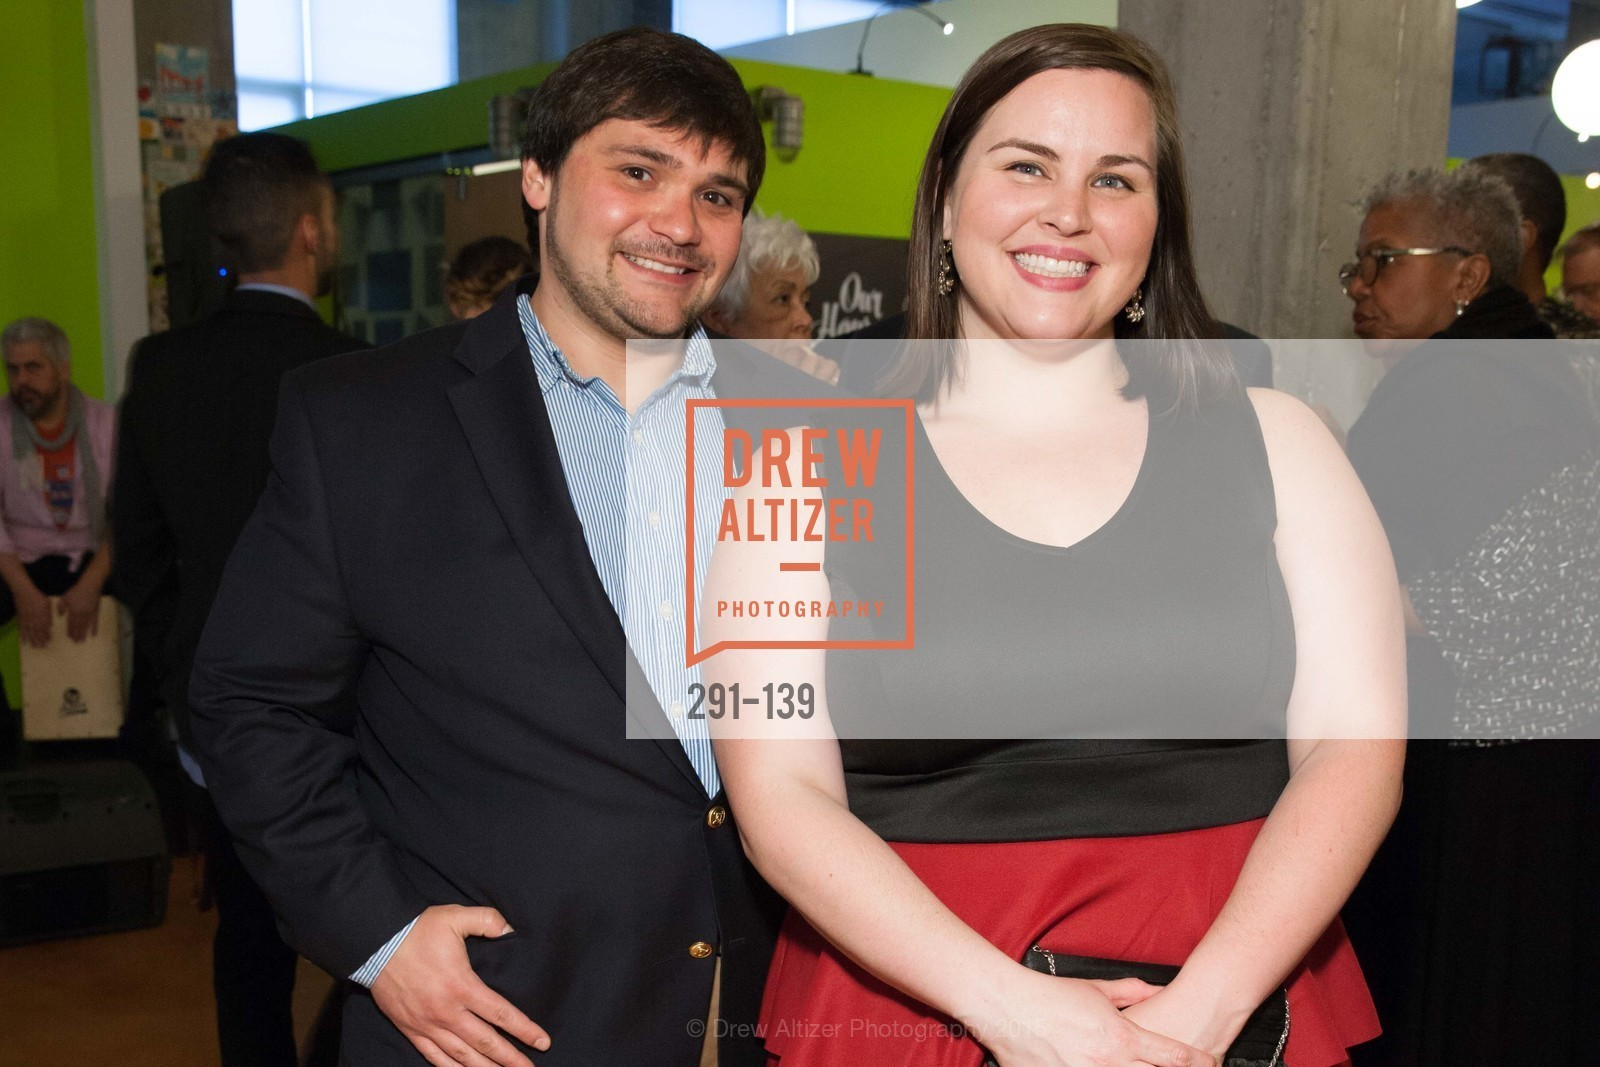 Robert Elwell, Hailey Gaddor, Homeless Prenatal Program Our House, Our Mission Gala, 2500 18th St, May 29th, 2015,Drew Altizer, Drew Altizer Photography, full-service agency, private events, San Francisco photographer, photographer california